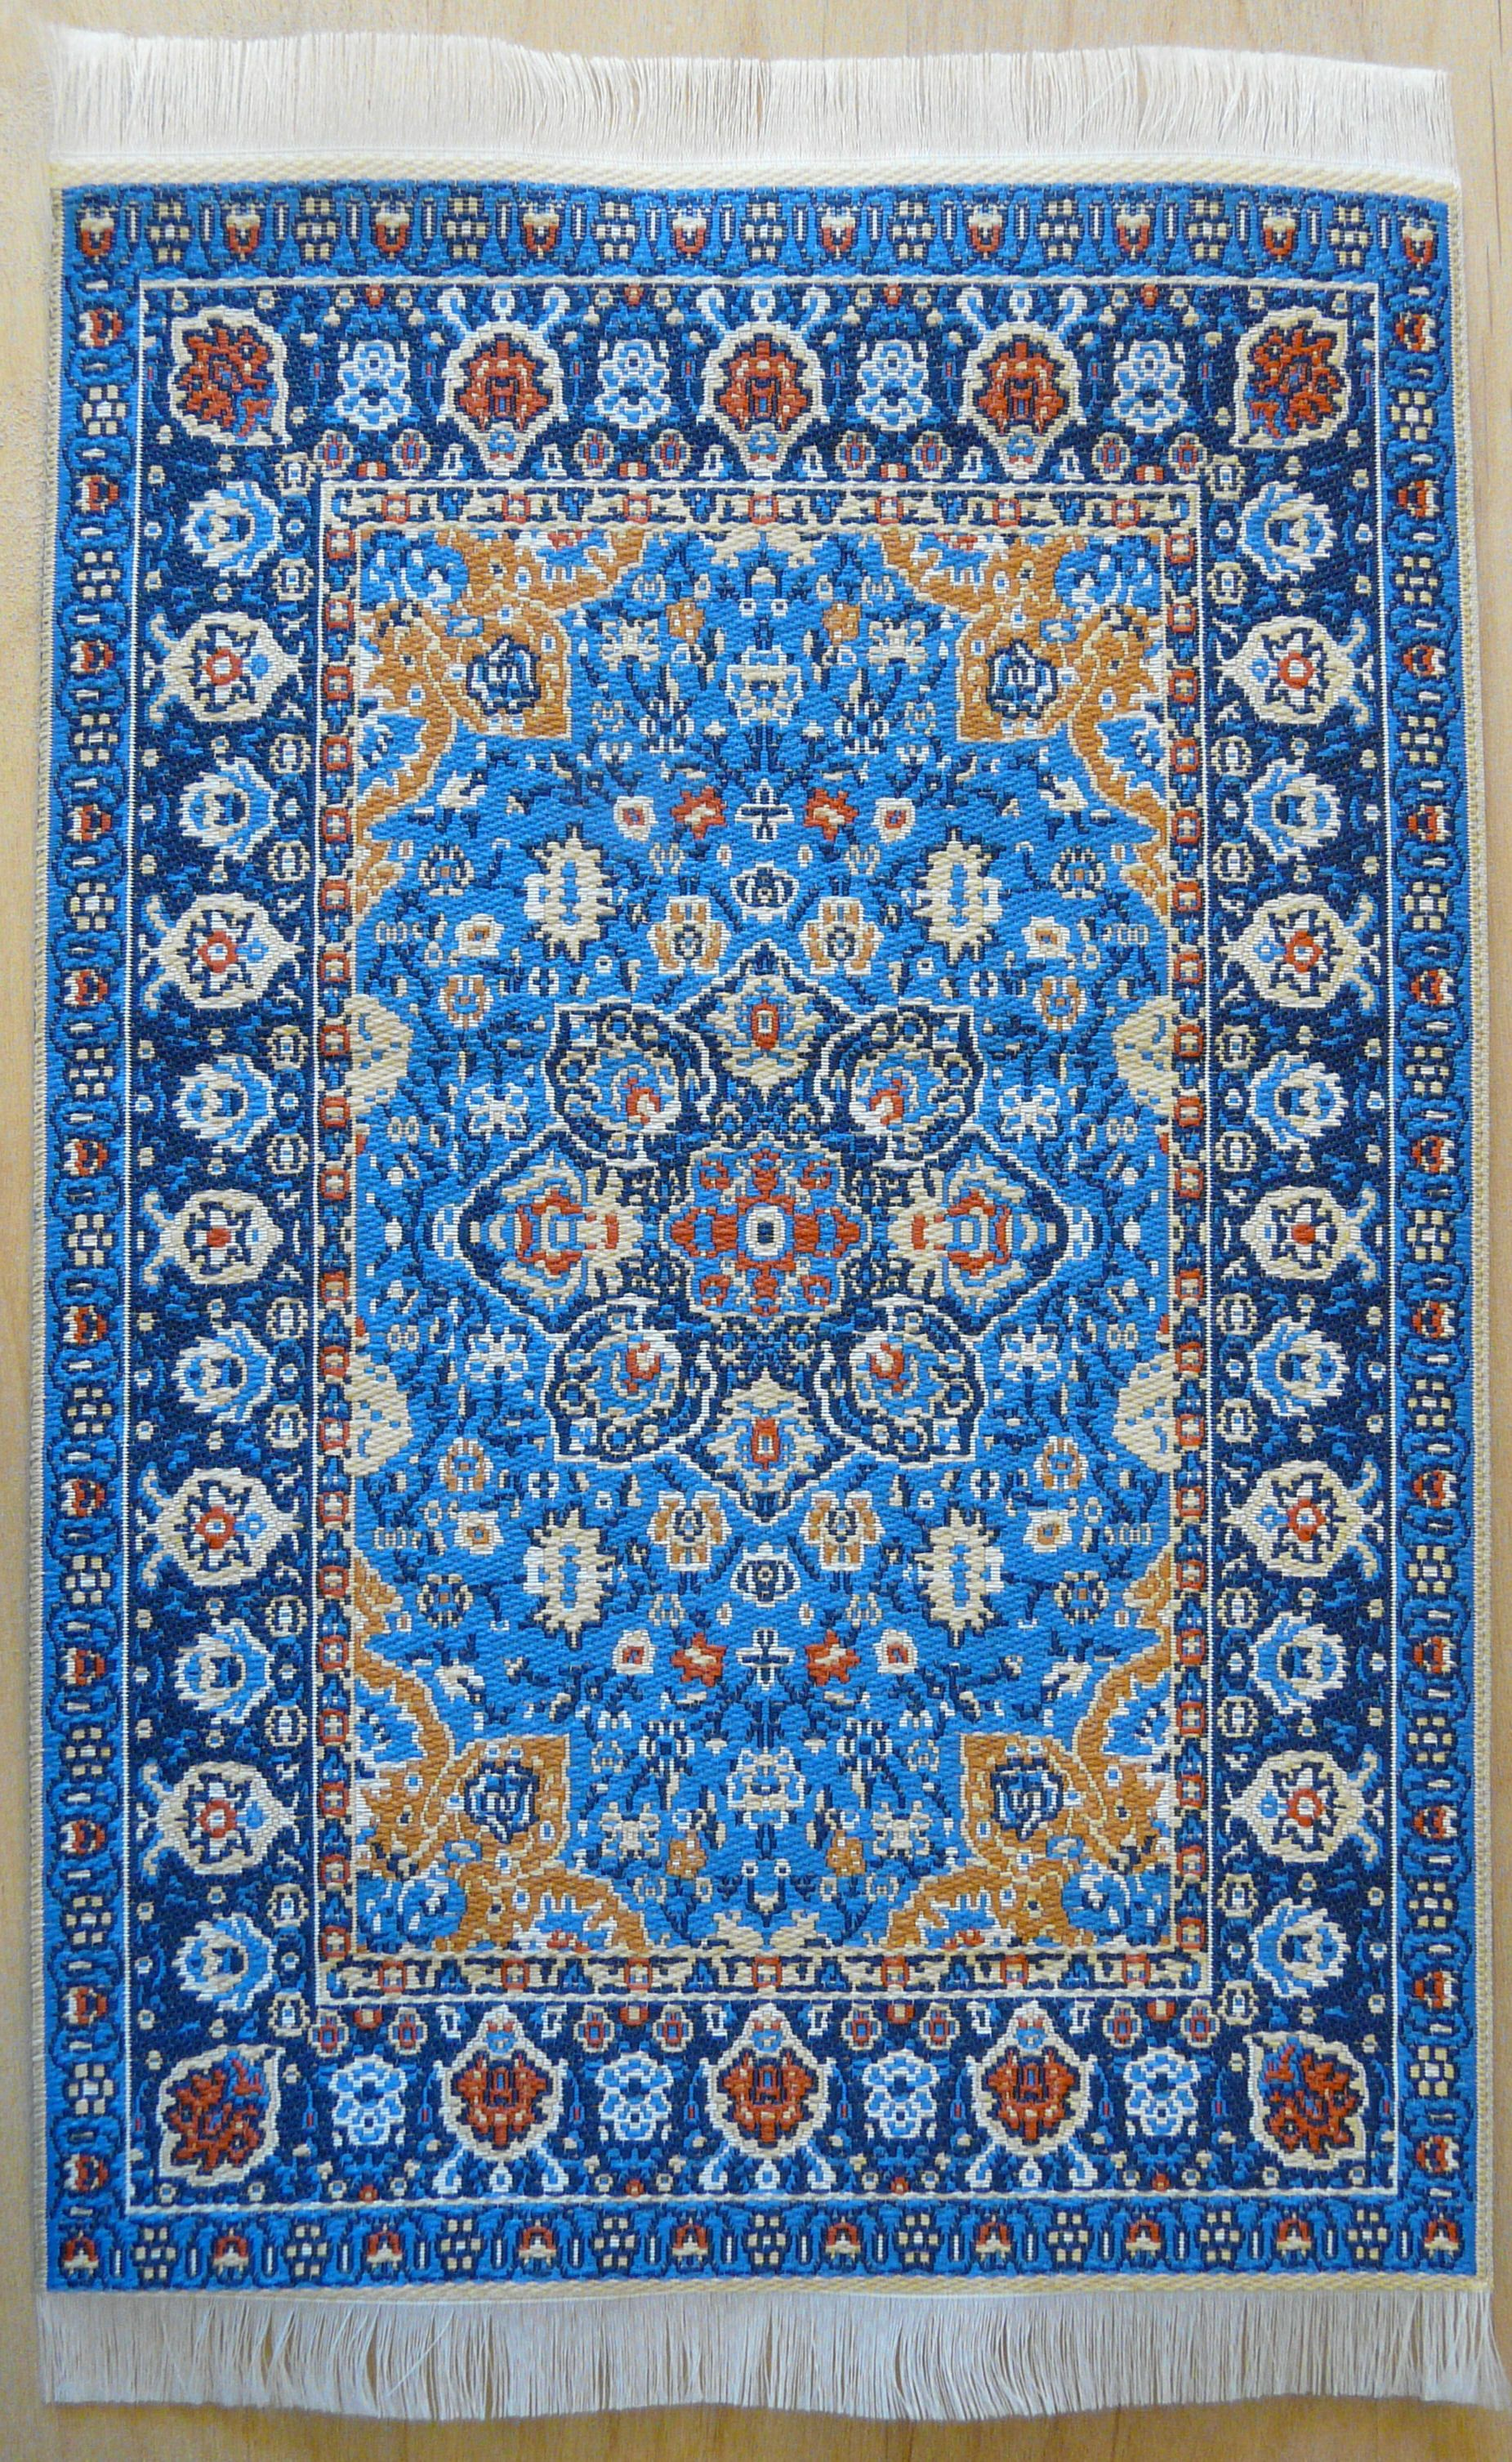 turkish rugs blue turkish rug w/persian influence in design WYOGDFD